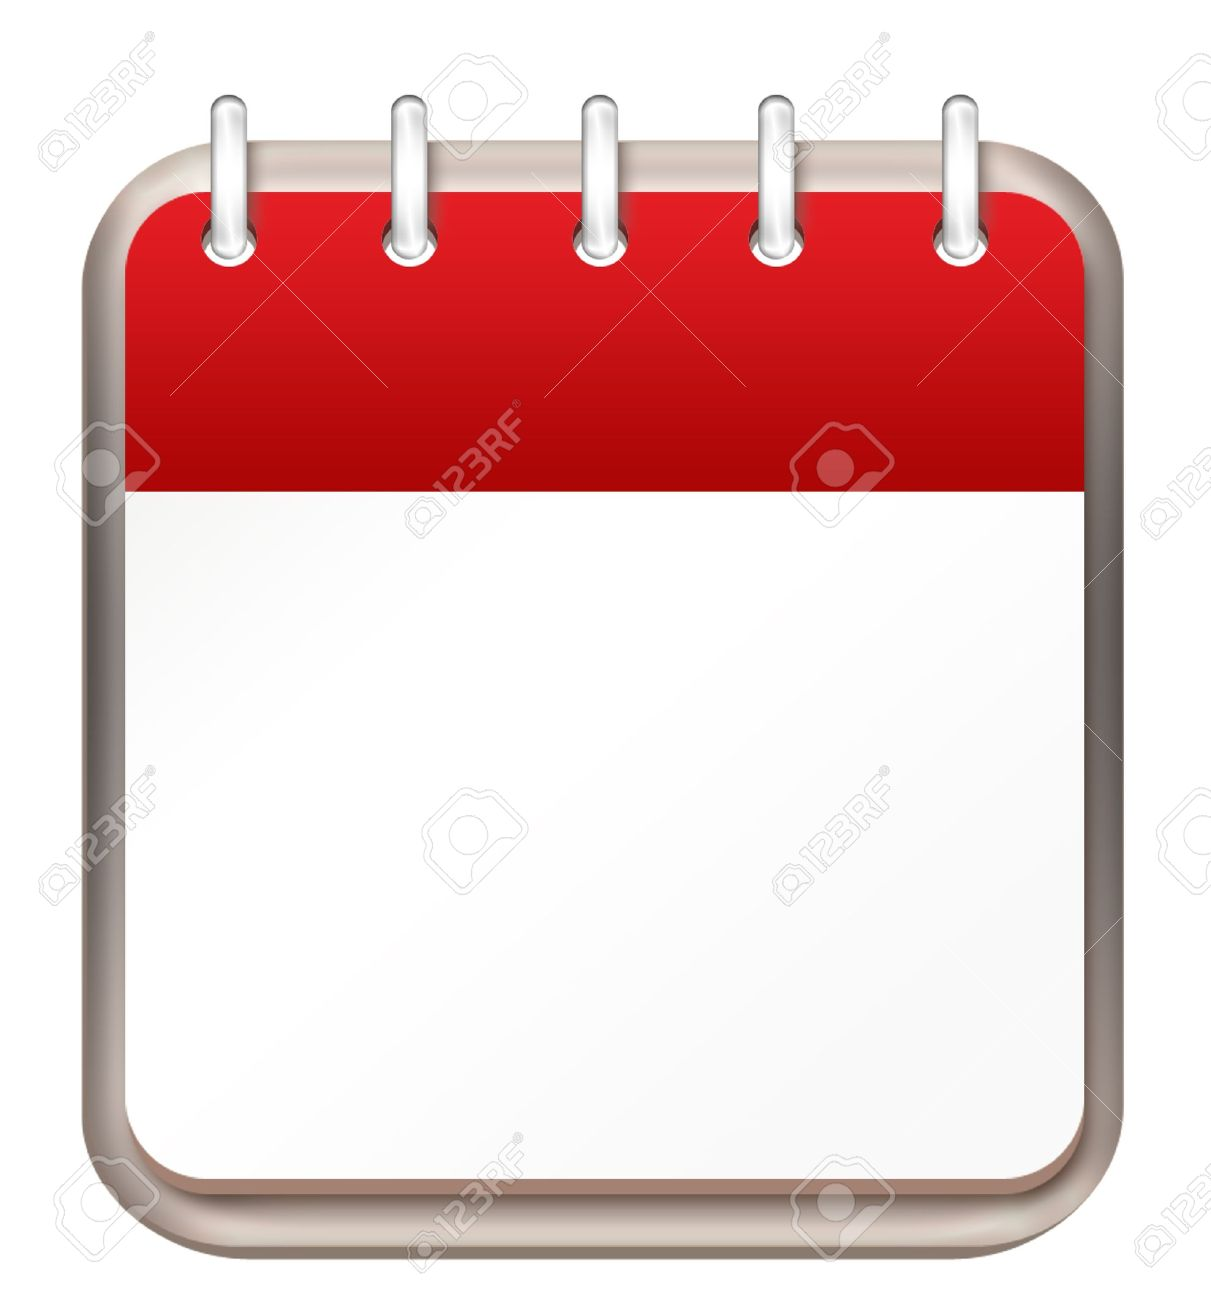 Calendar Red Template Stock Photo, Picture And Royalty Free Image ...